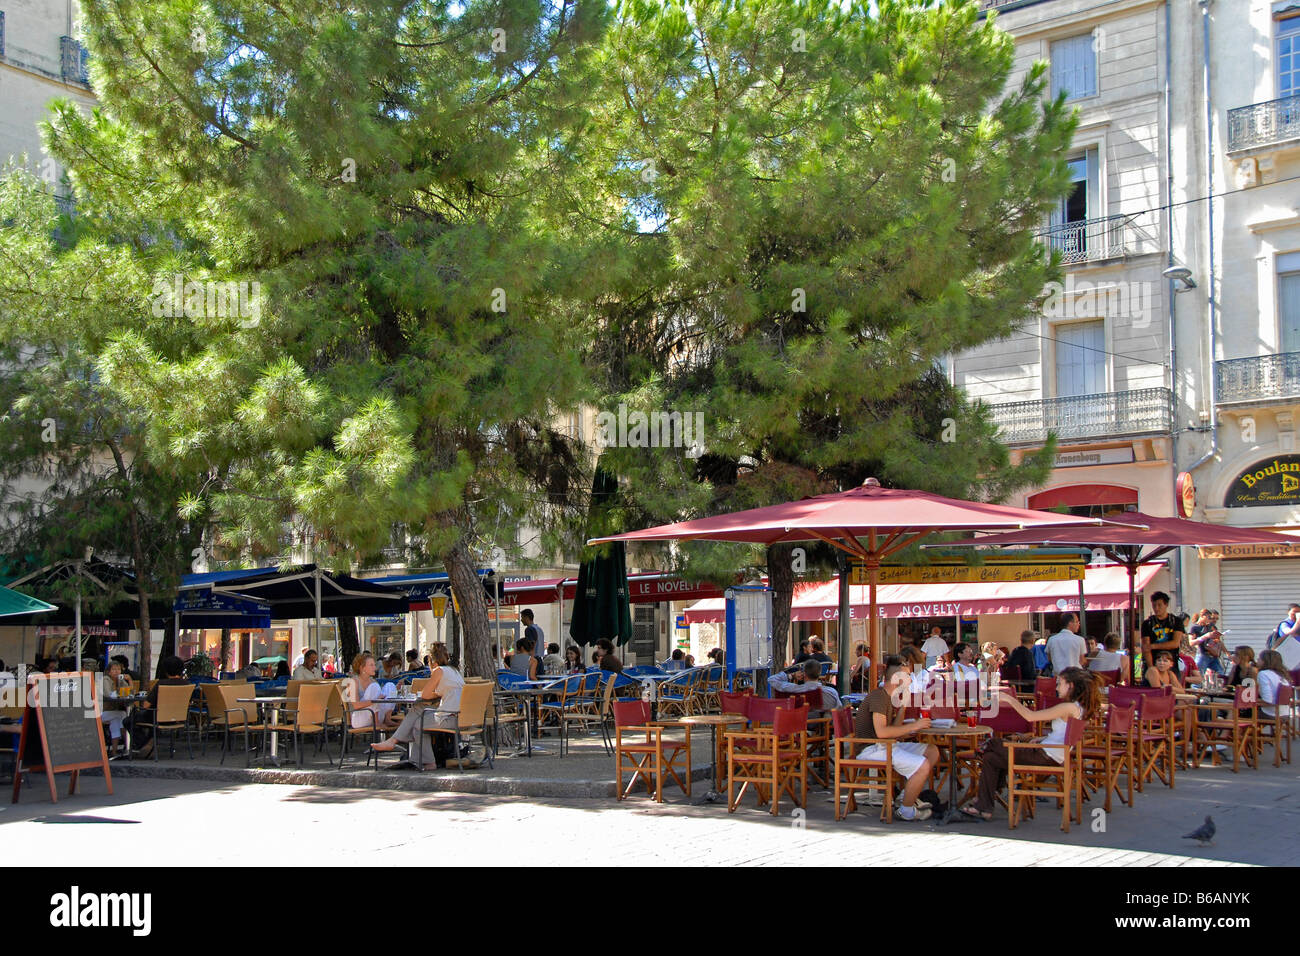 beer garden of a restaurant montpellier france stock photo royalty free image 21135063 alamy. Black Bedroom Furniture Sets. Home Design Ideas